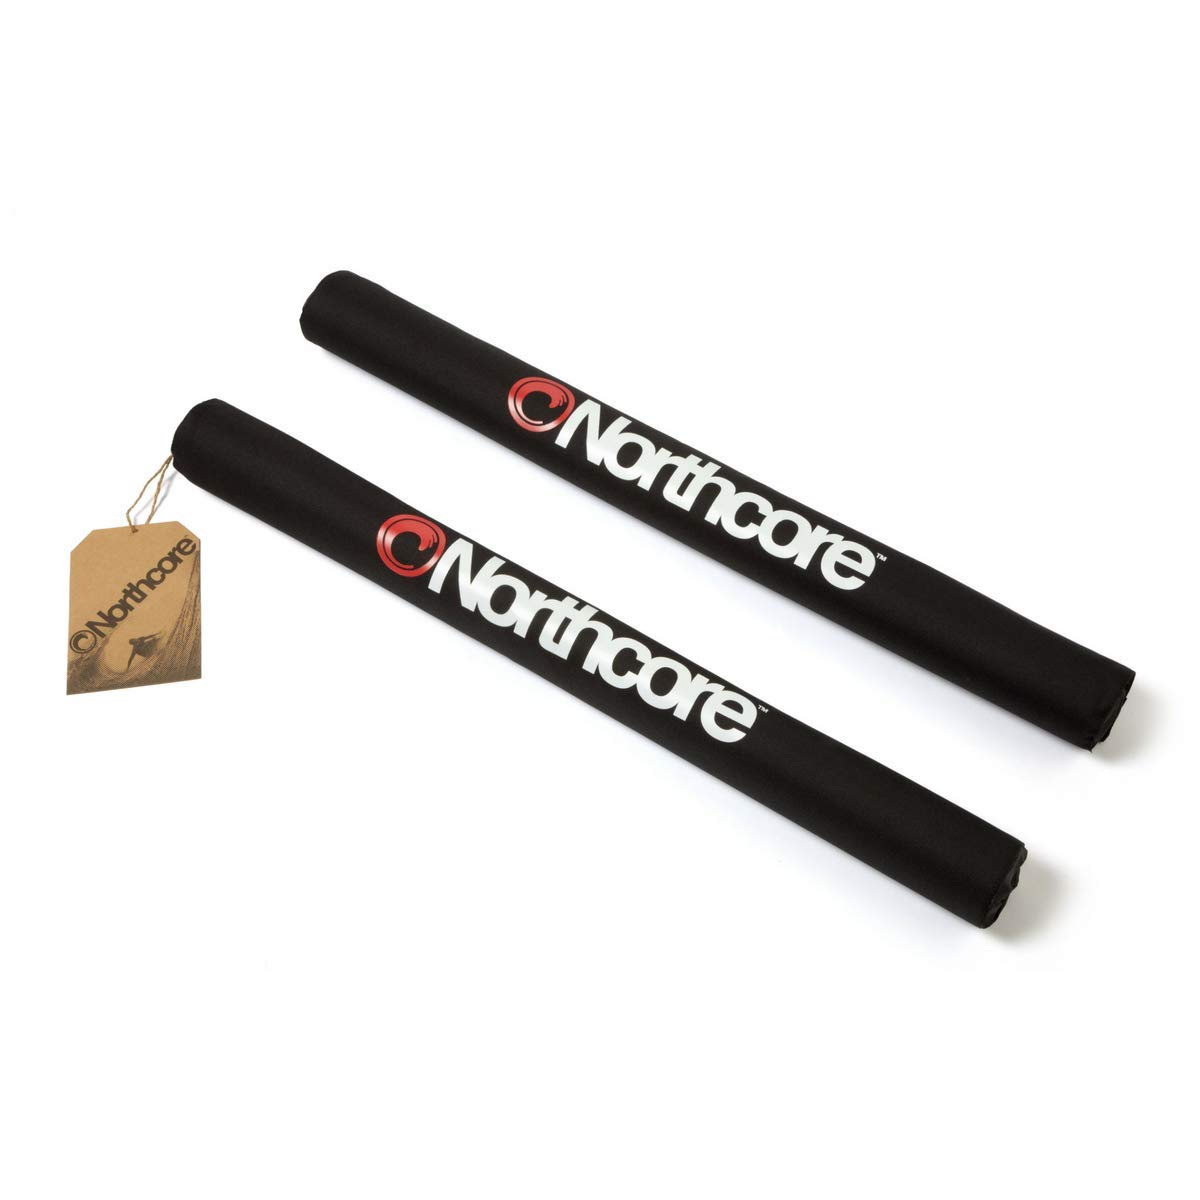 Northcore Roof Rack Bar Pads - 'Wide Load' 72cm NOCO21B